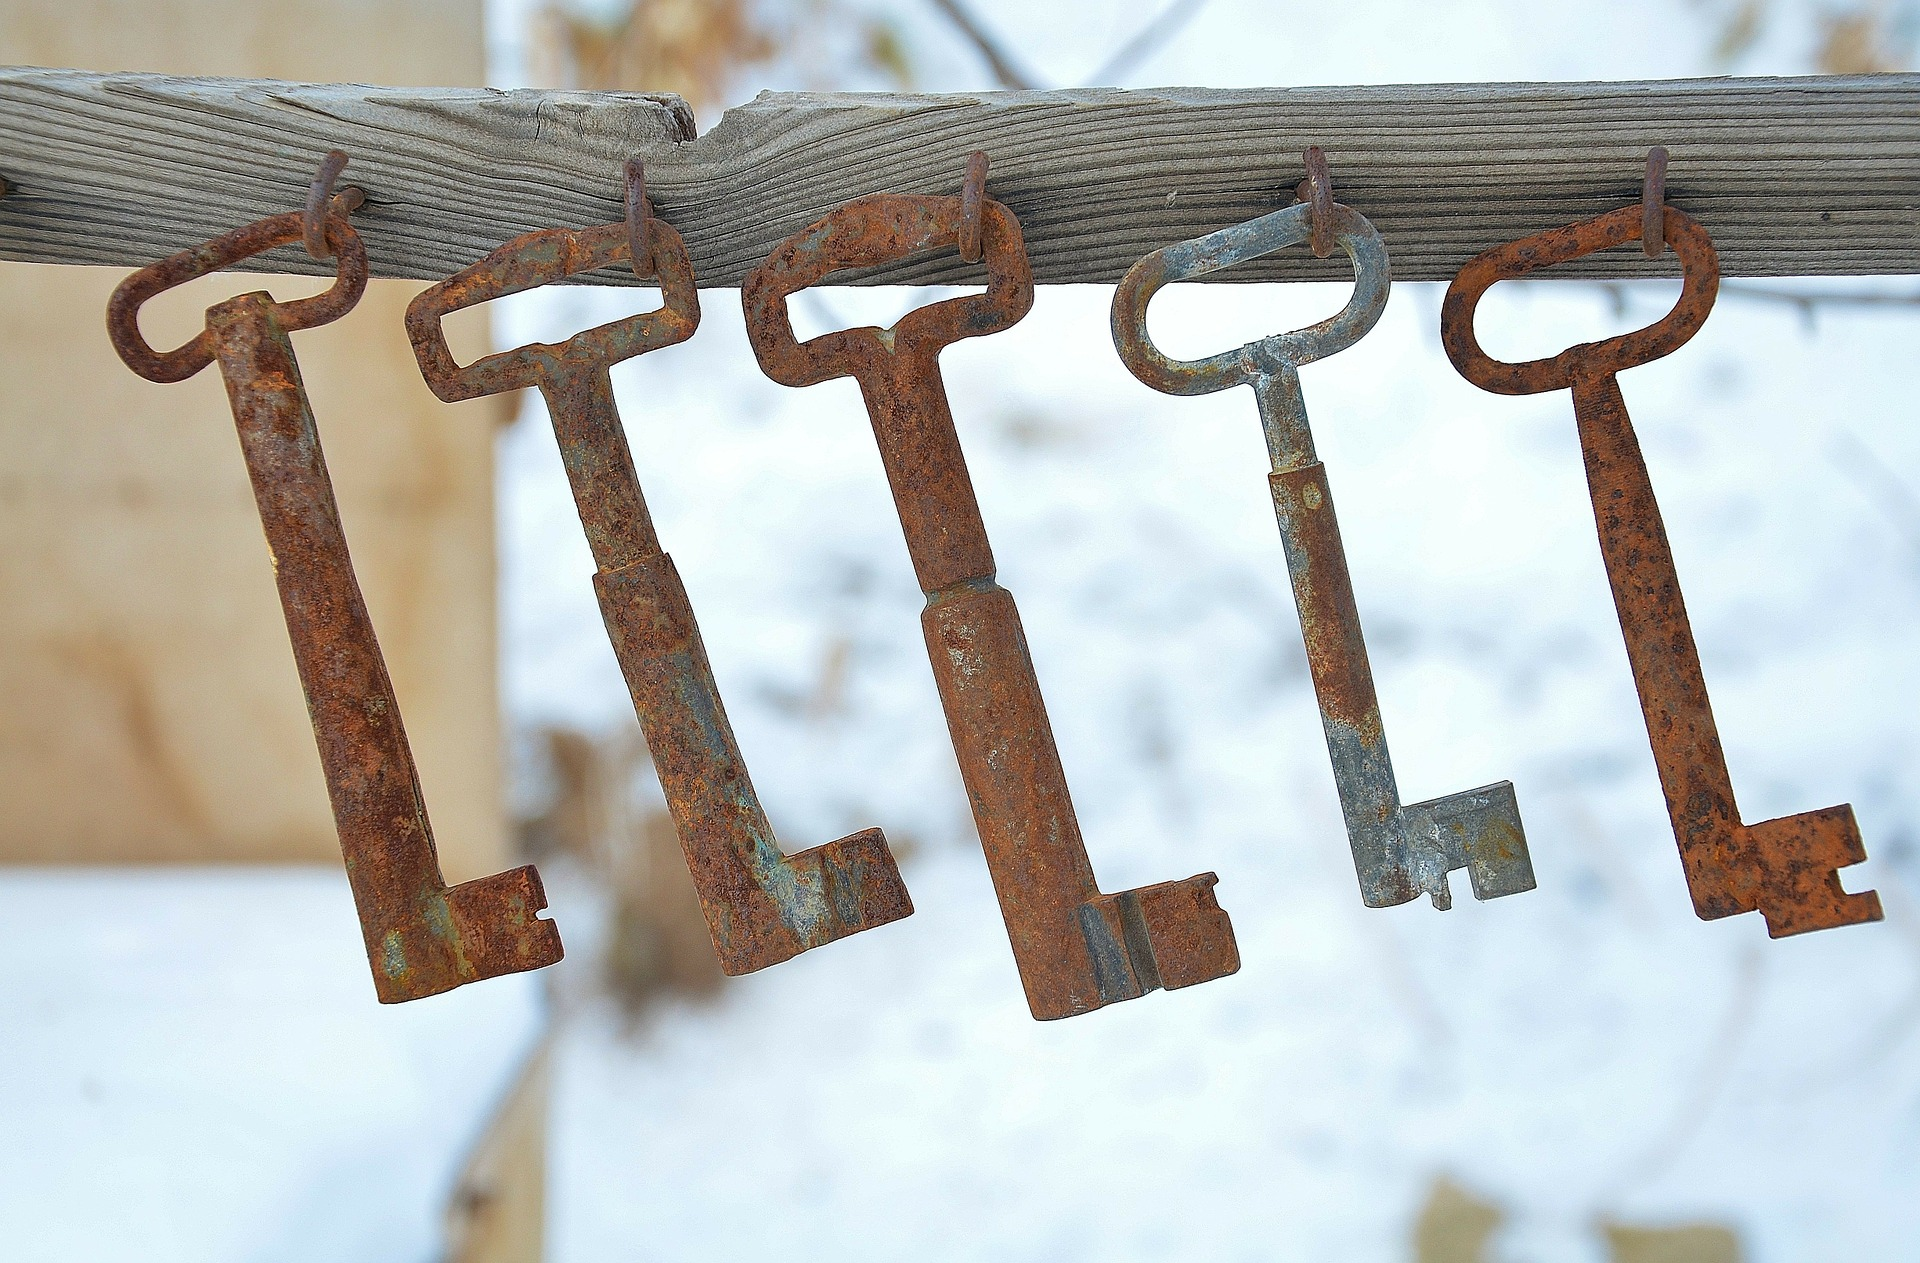 Photo of keys hanging in a row / by GLady/ Pixabay